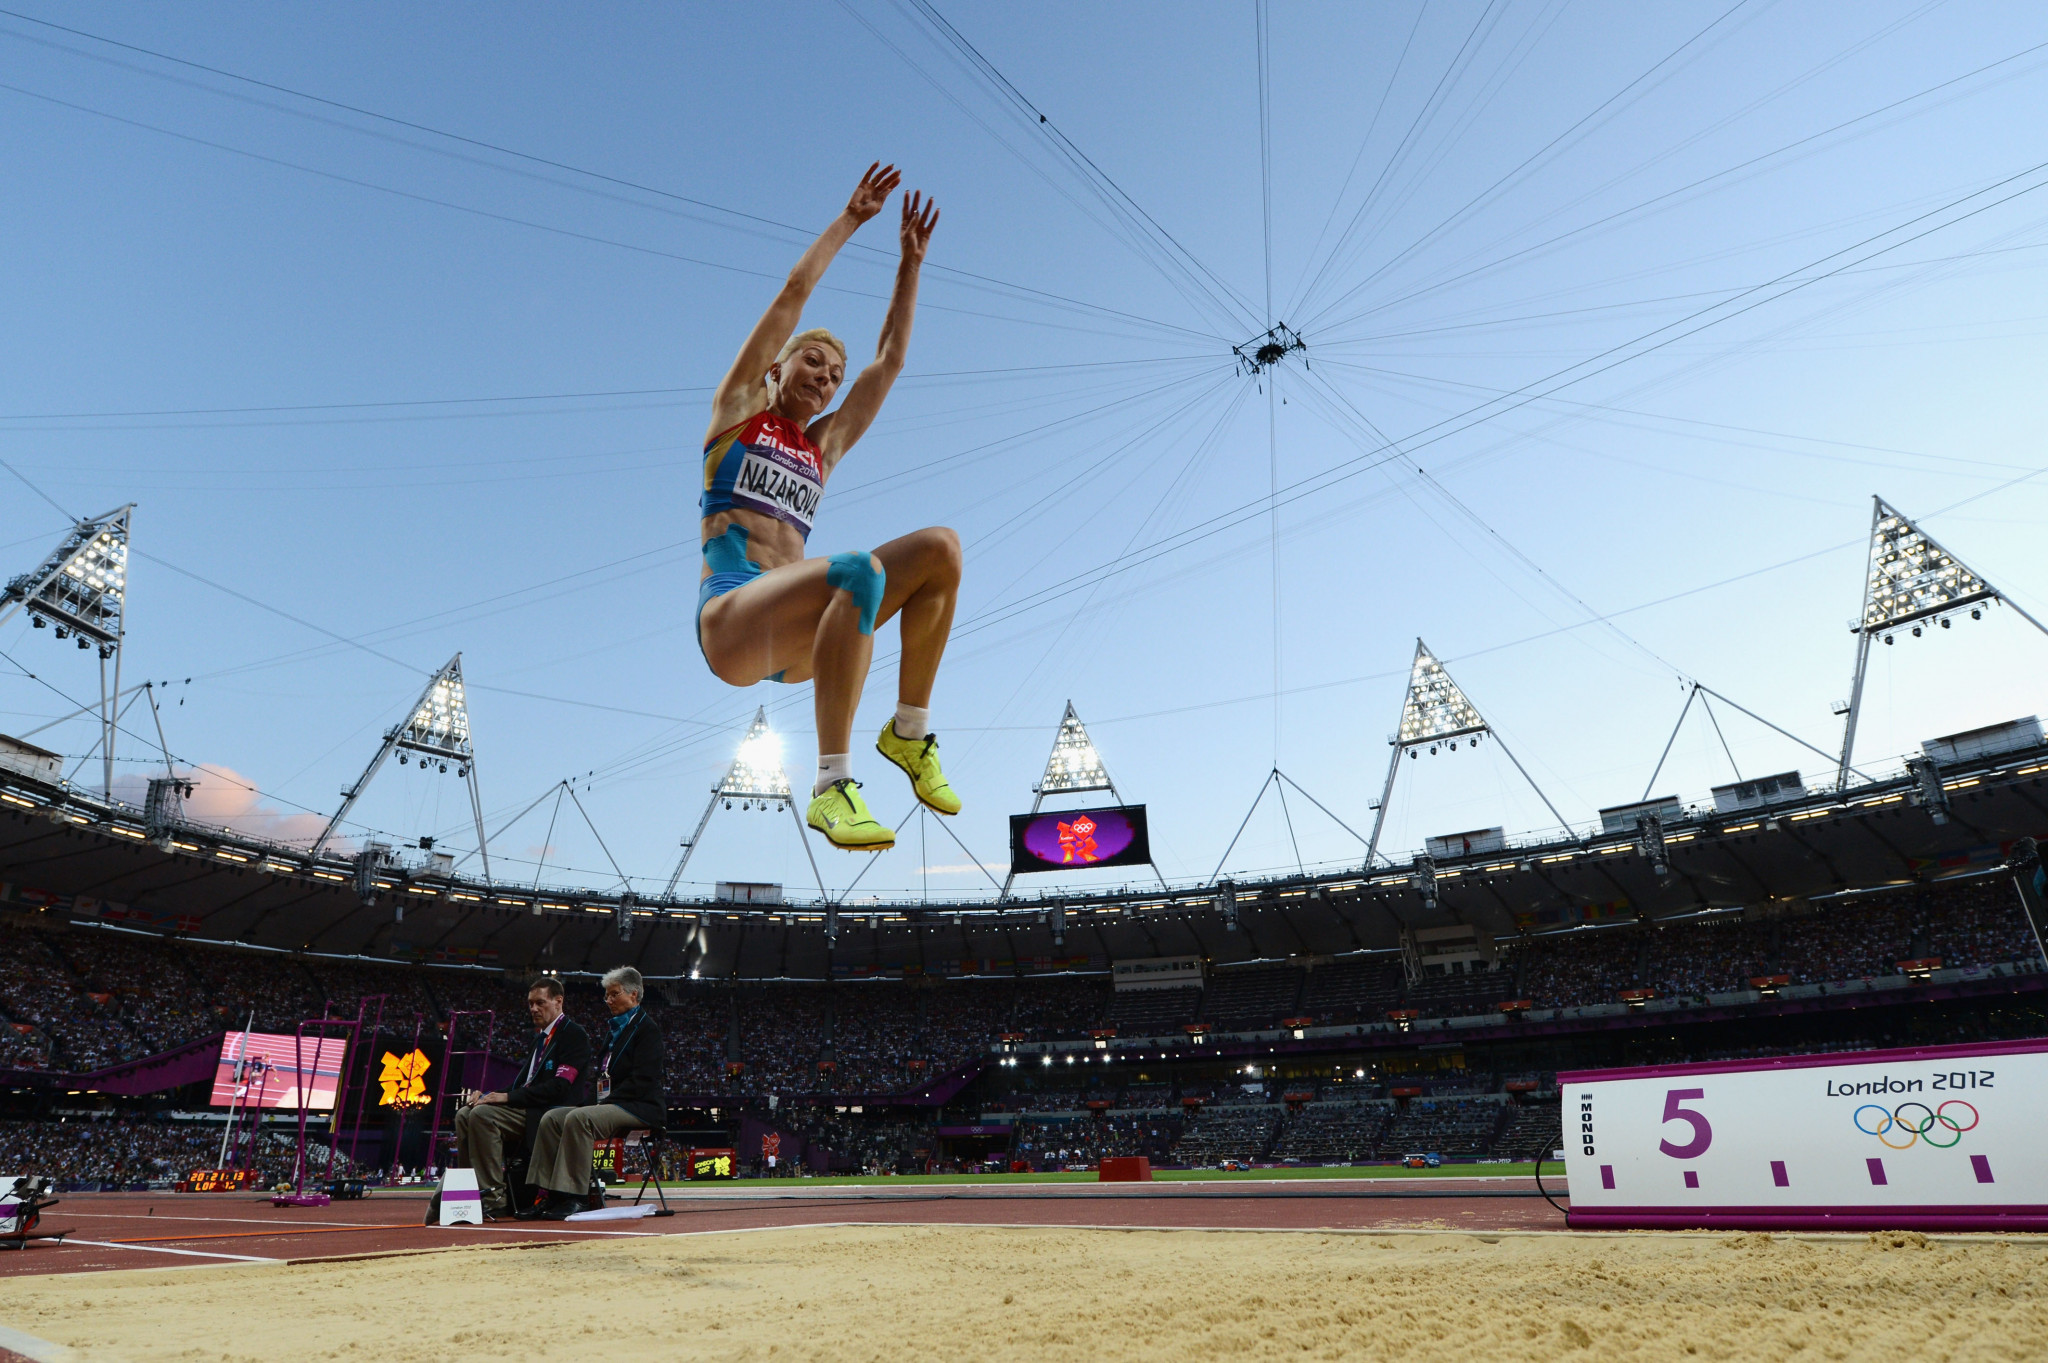 Long jumper Anna Nazarova has been disqualified from London 2012 by the IOC ©Getty Images